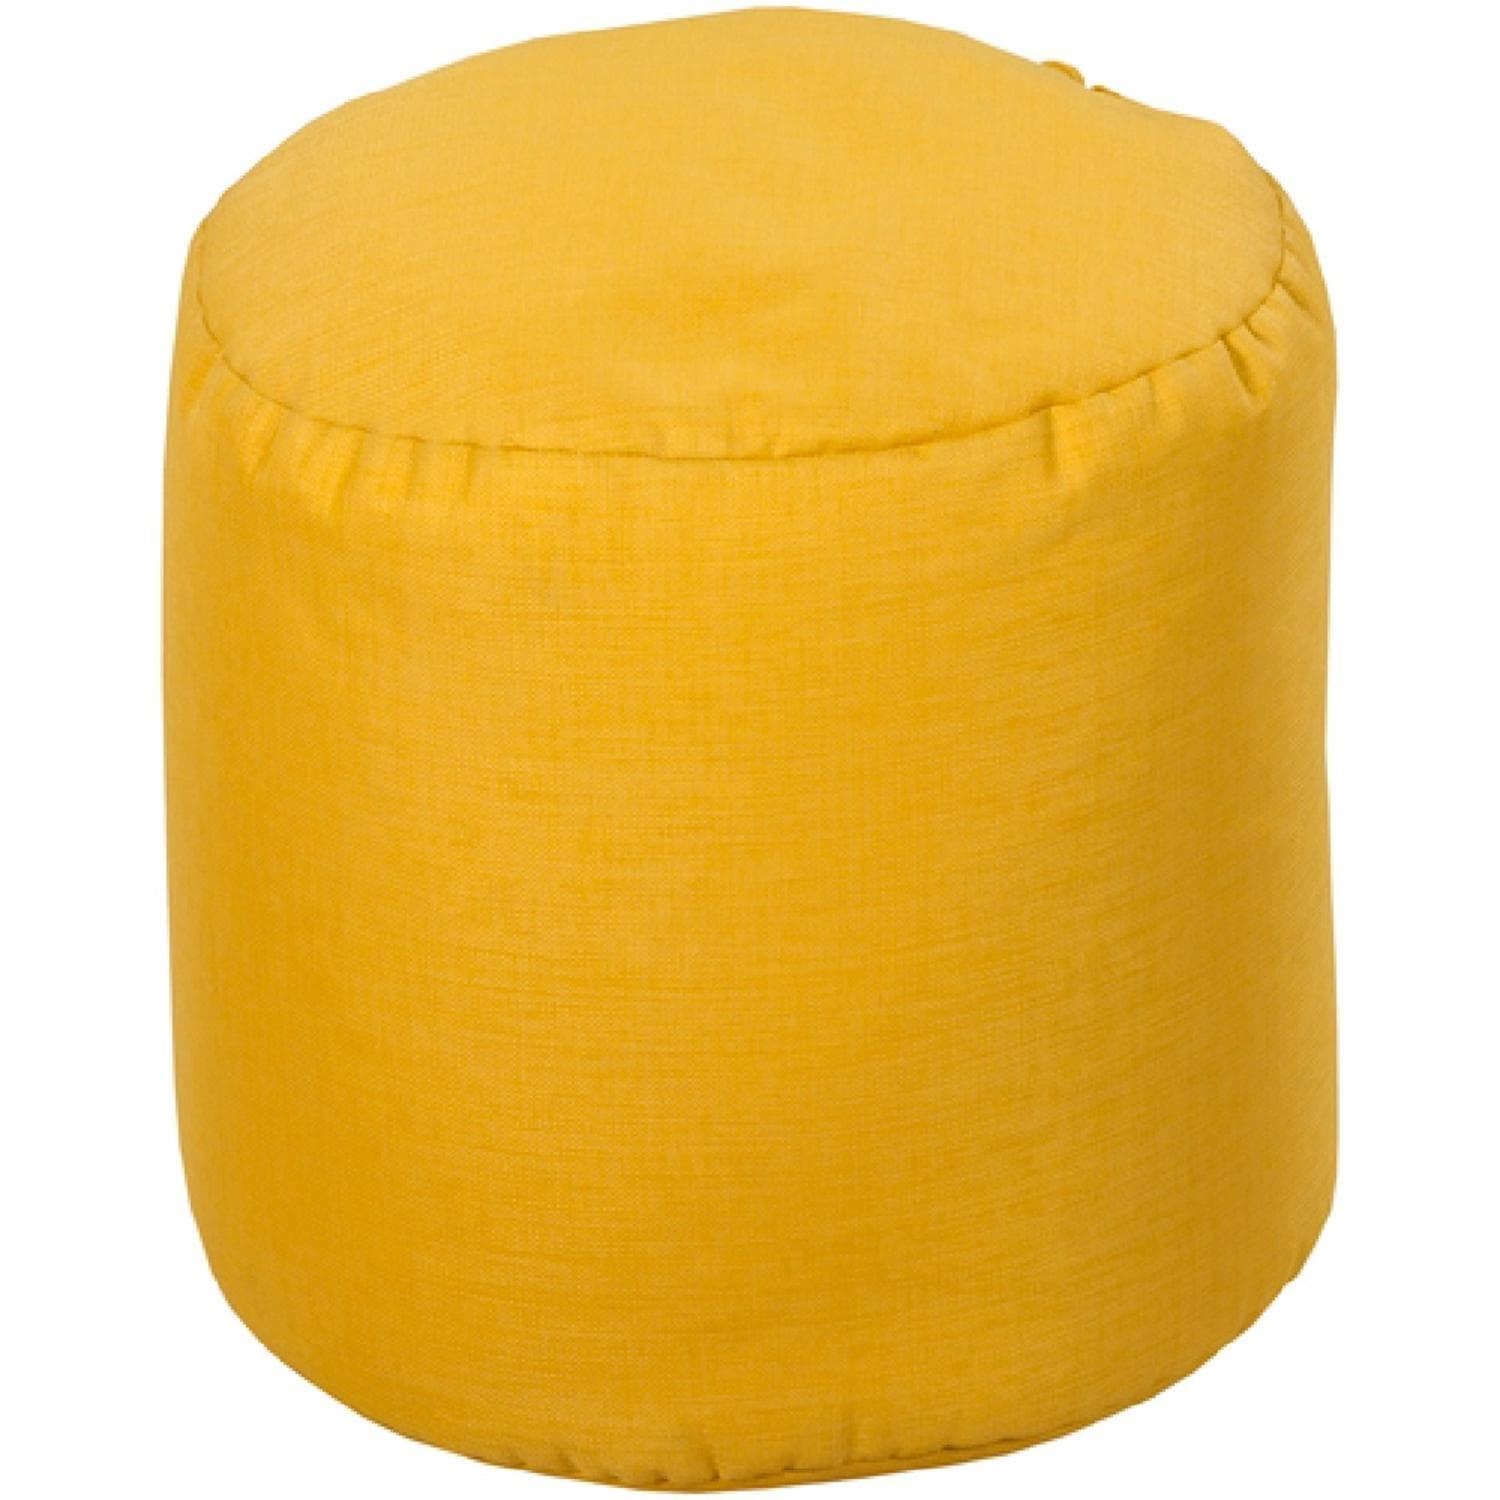 Outstanding 18 Yellow Circle Chic Round Outdoor Patio Pouf Ottoman Machost Co Dining Chair Design Ideas Machostcouk